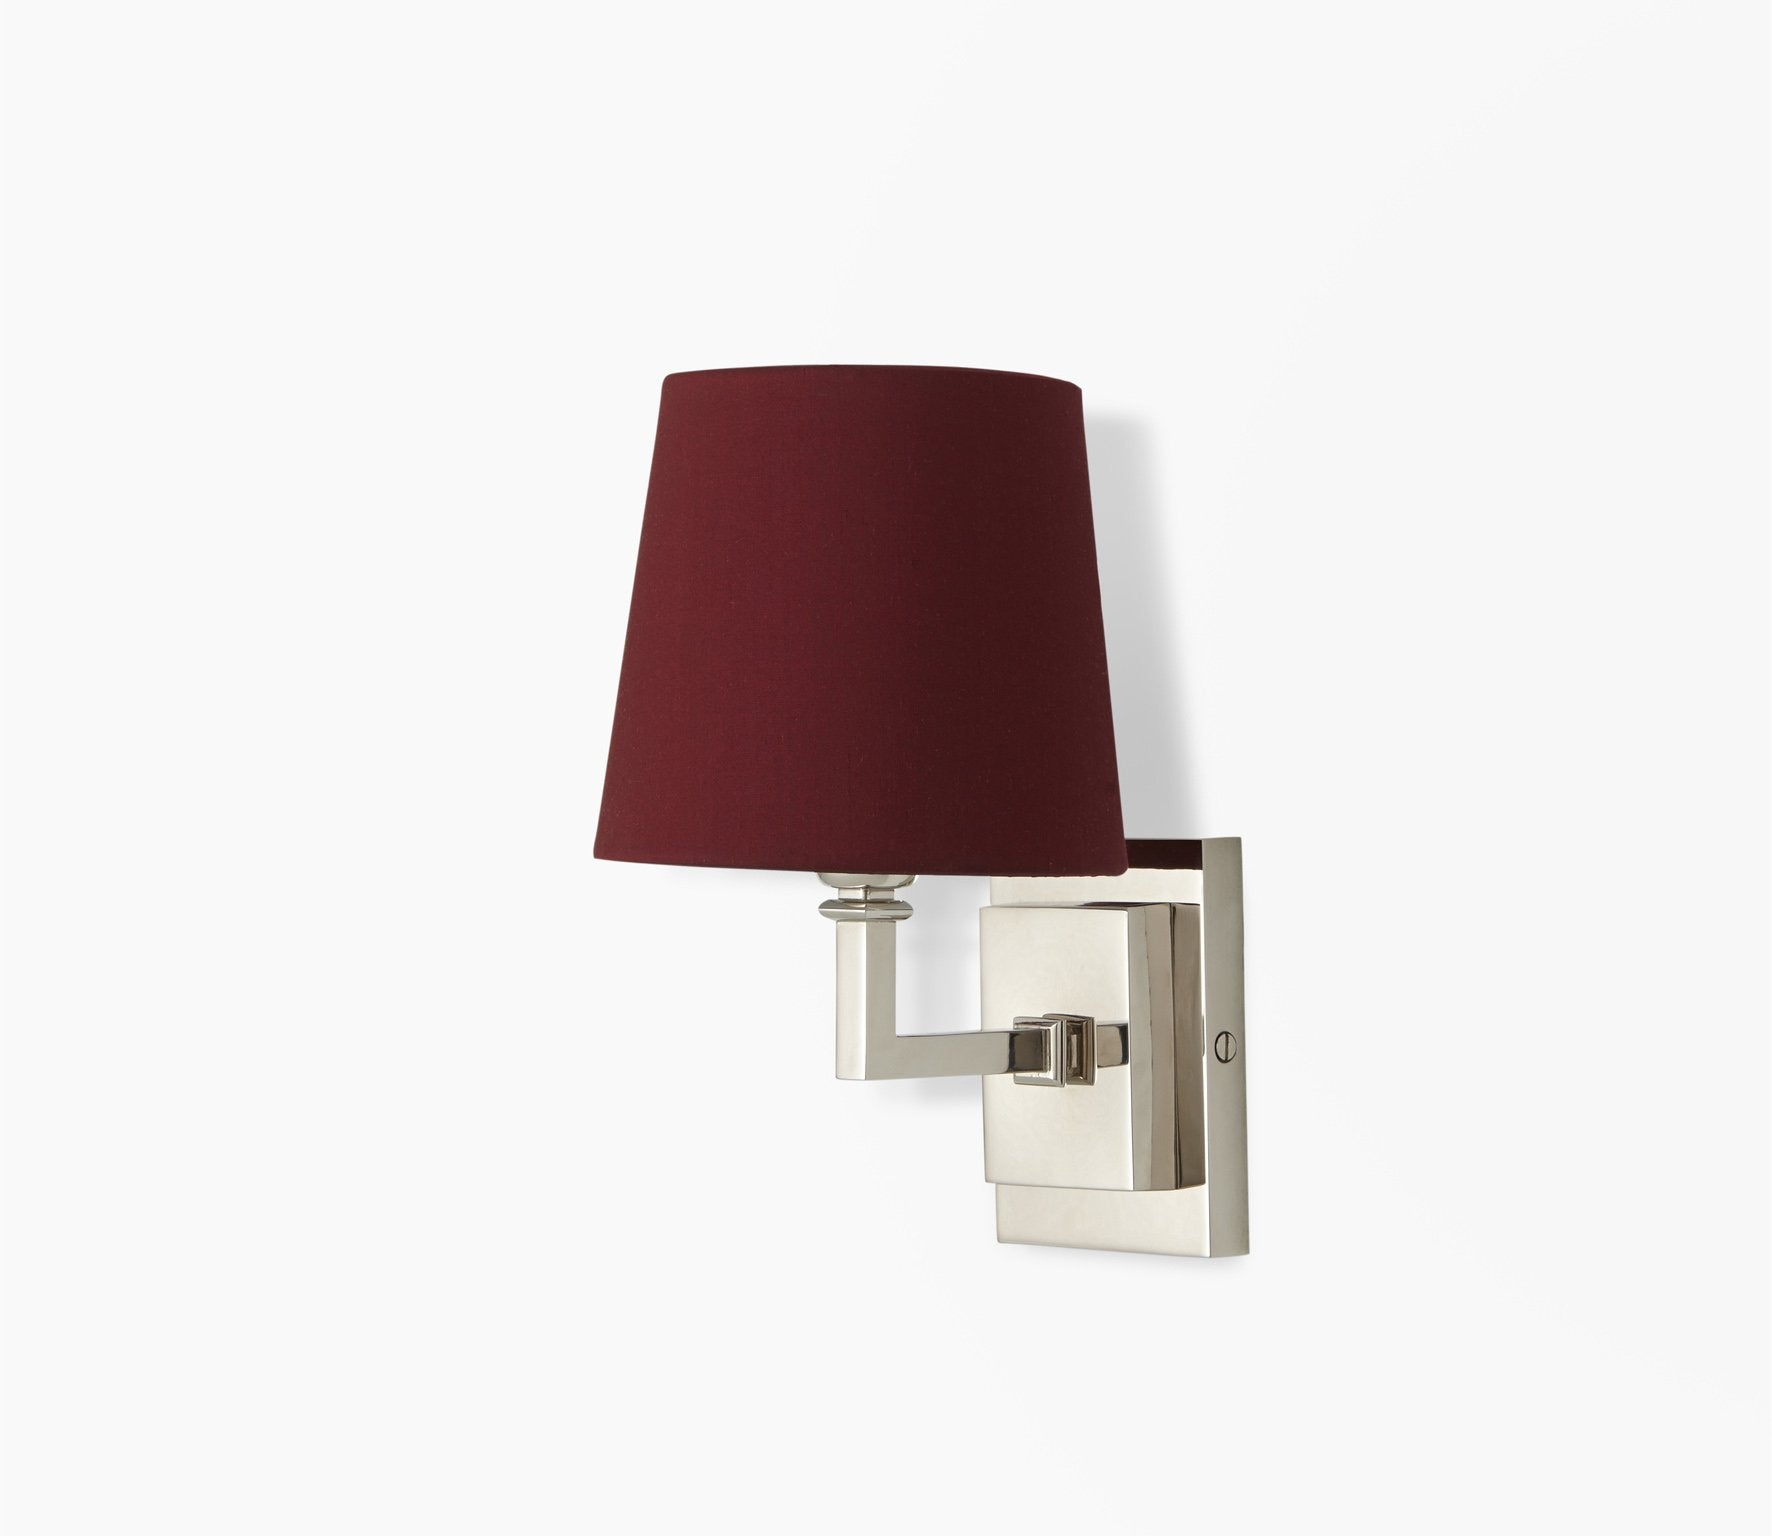 Parker Wall Light with Drum Shade Product Image 4